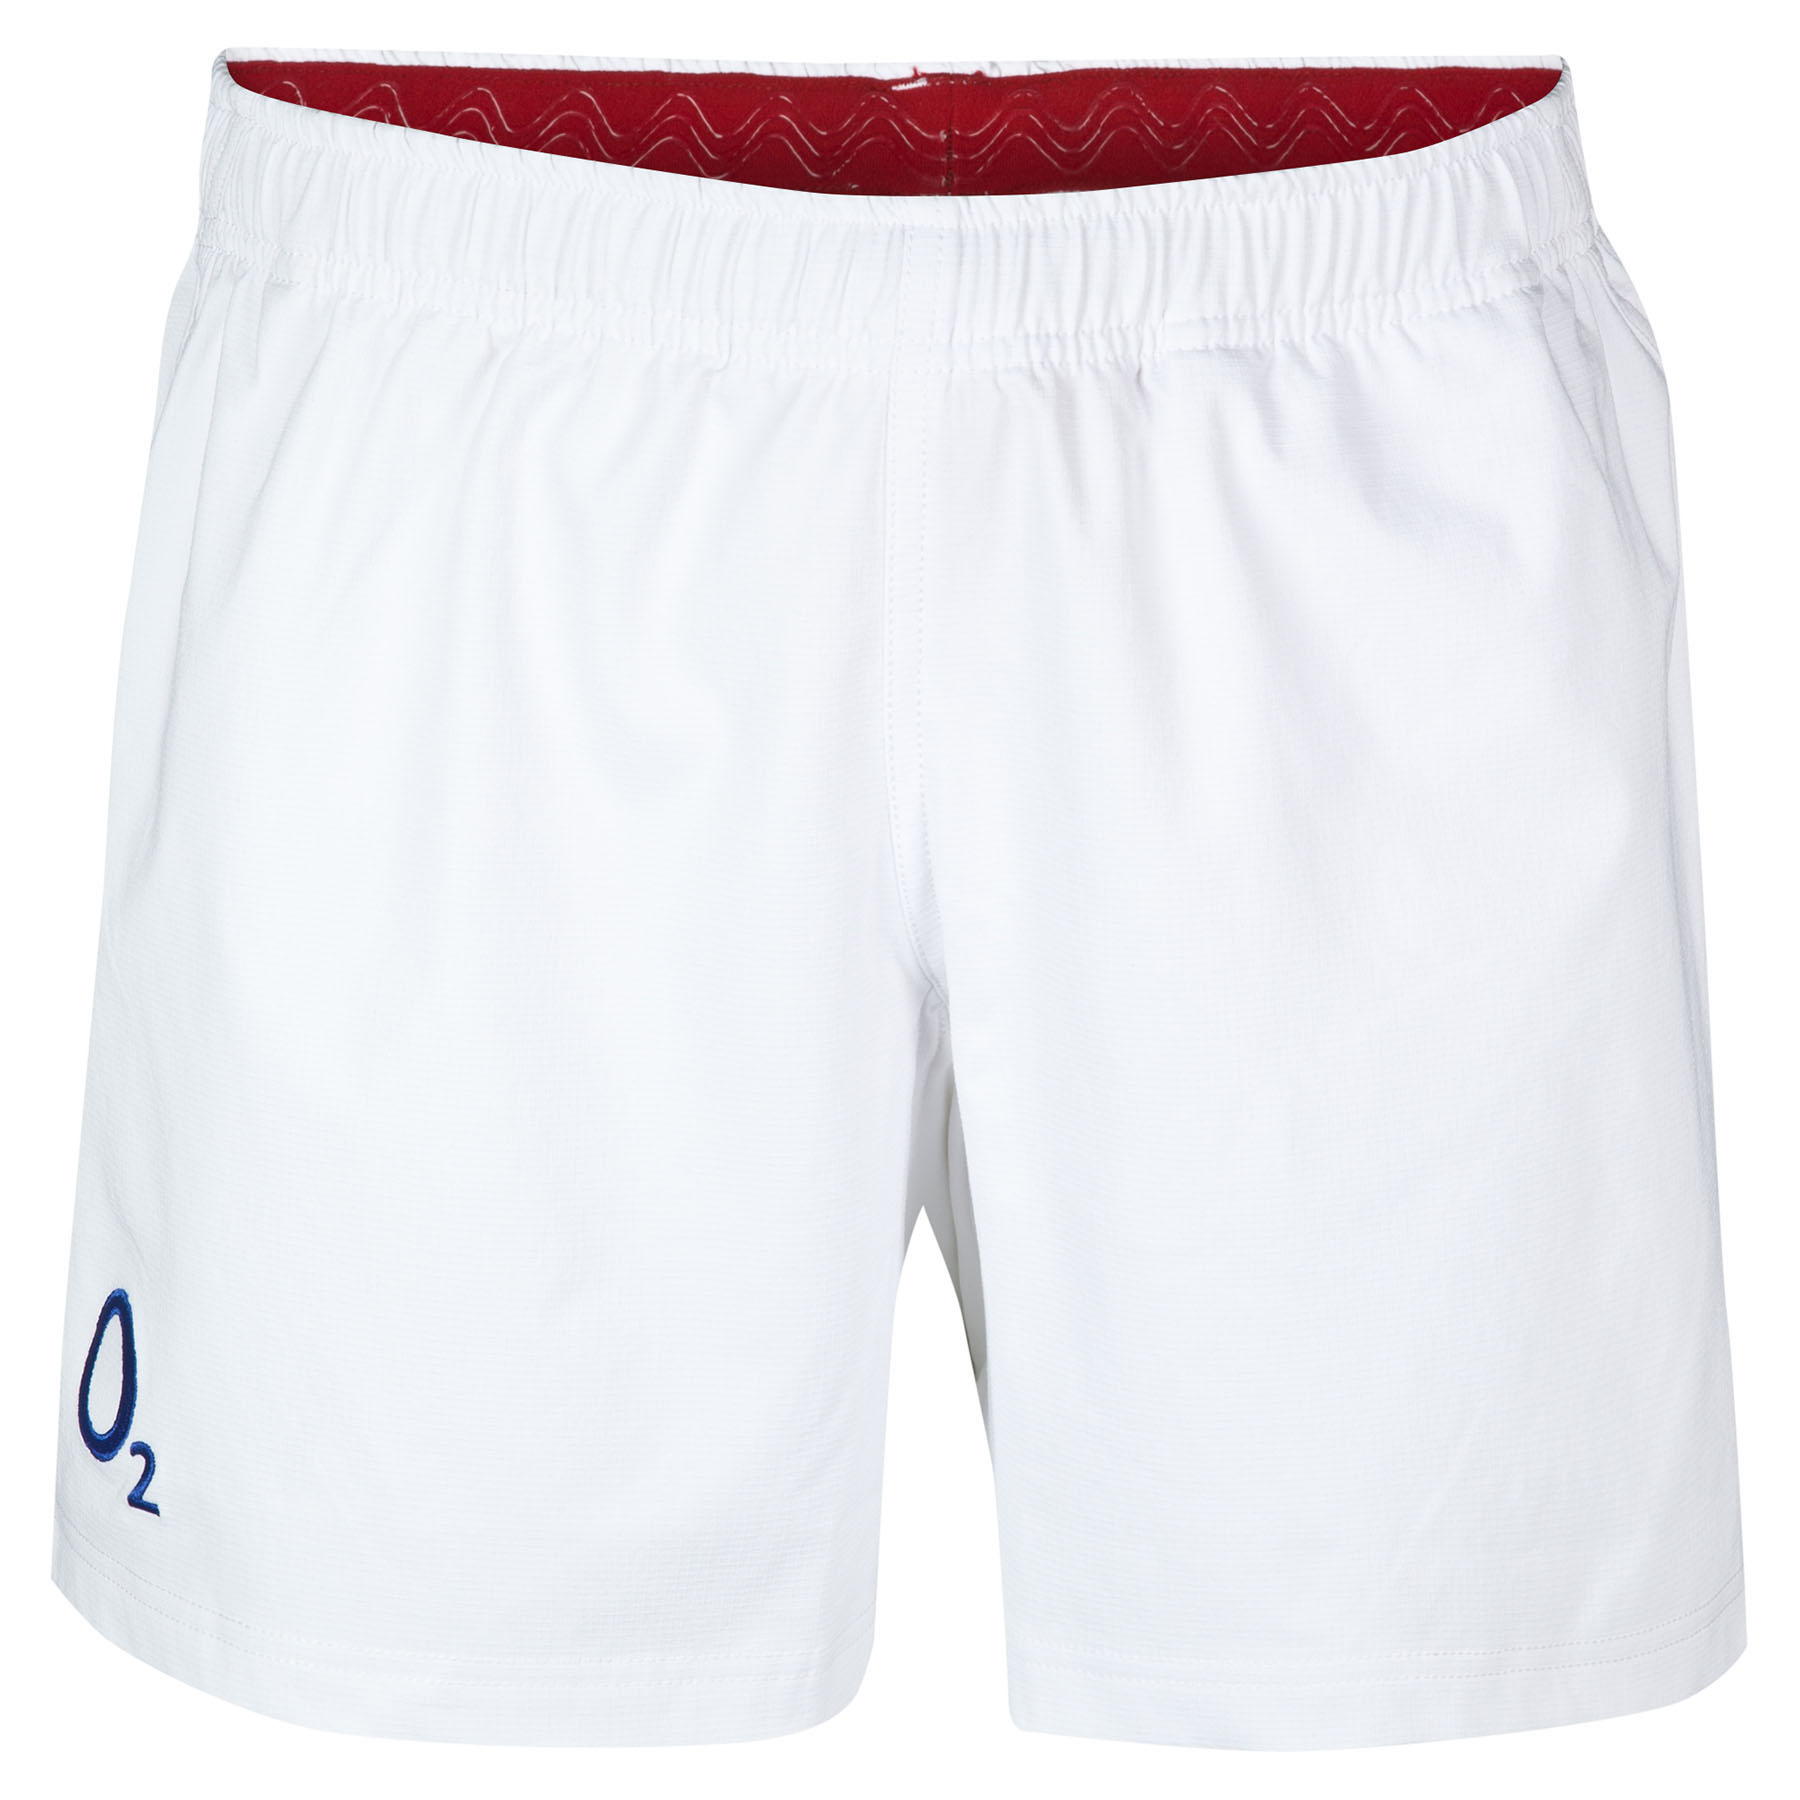 England Home Short 2014/15 - Kids Navy